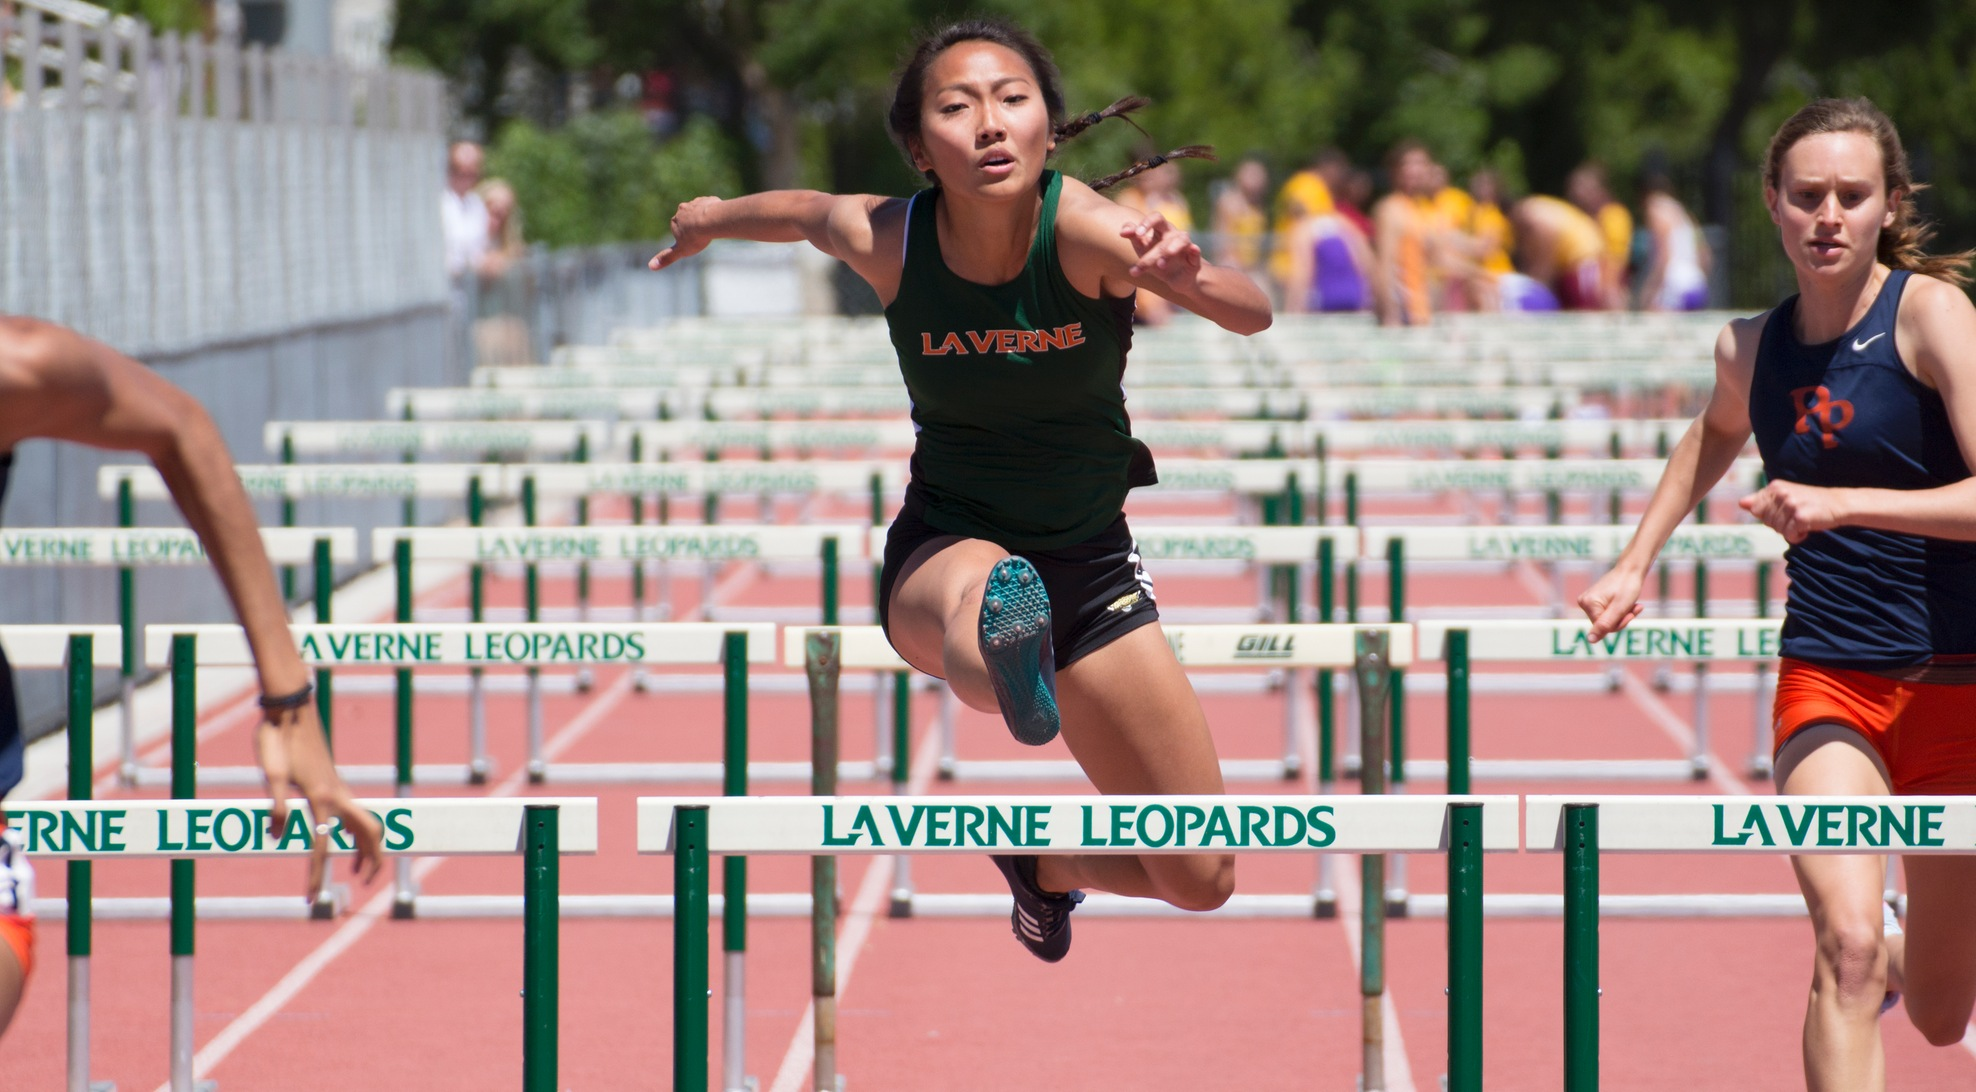 Lee Kim, Portillo record personal records at Rossi Relays